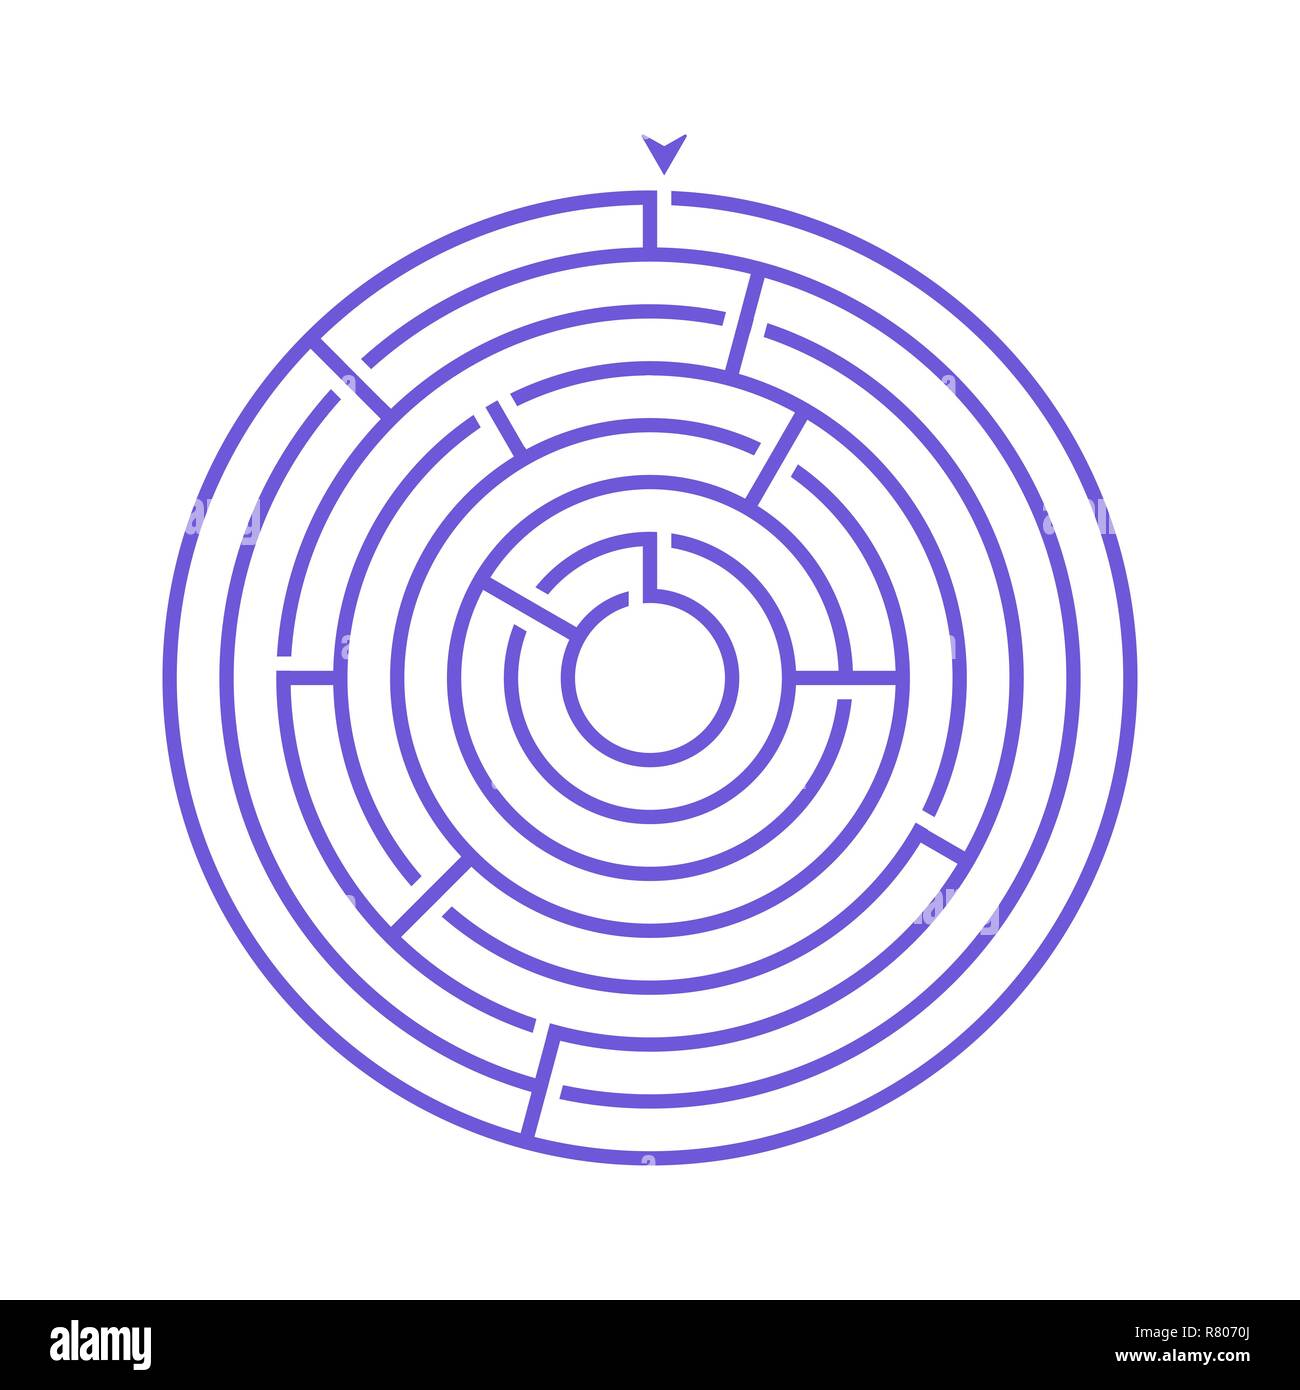 Simple round maze labyrinth game for kids. One of the puzzles from the set of child riddles Stock Vector